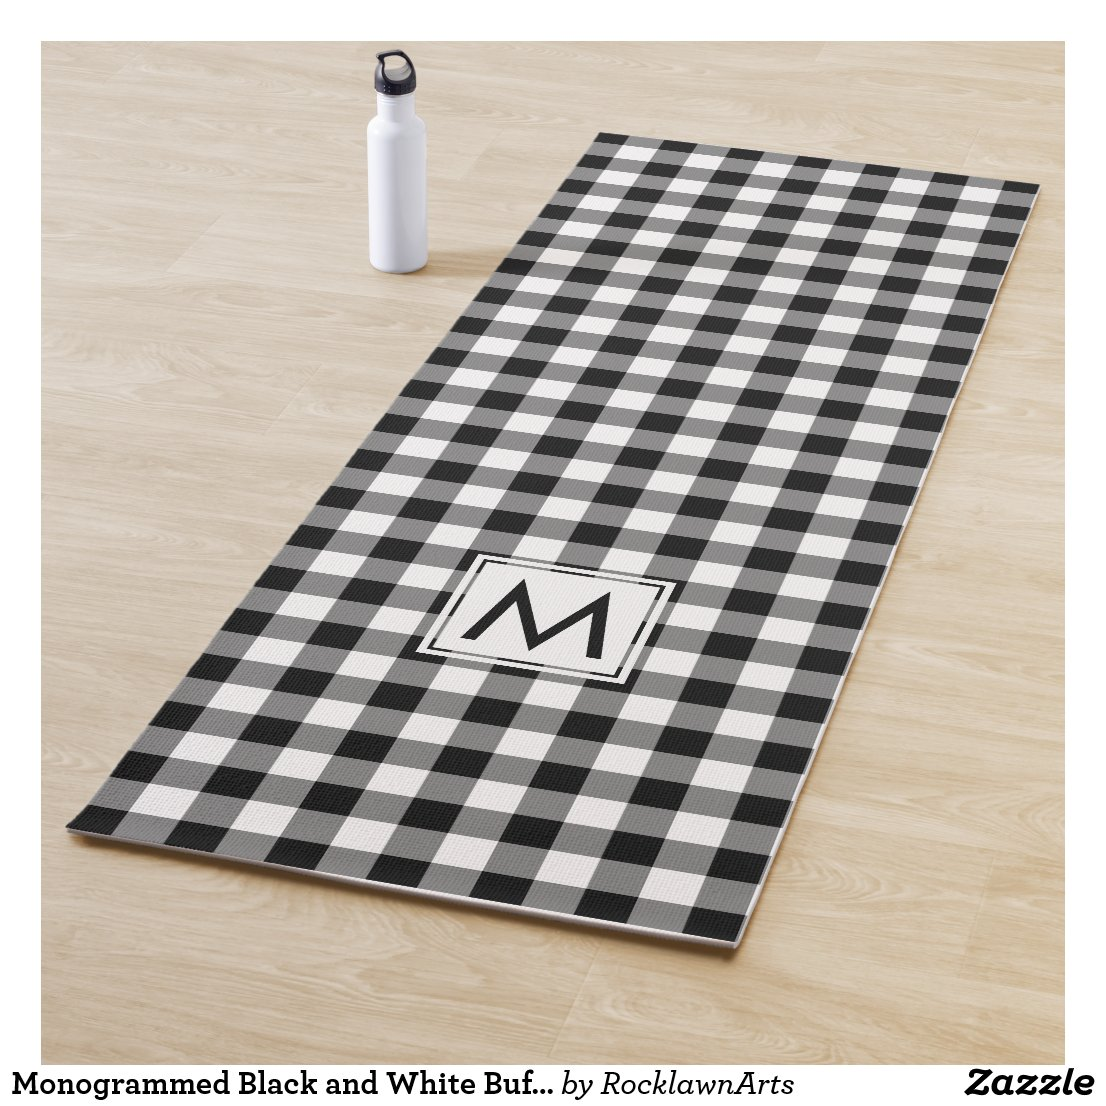 Monogrammed Black and White Buffalo Check Pattern Yoga Mat